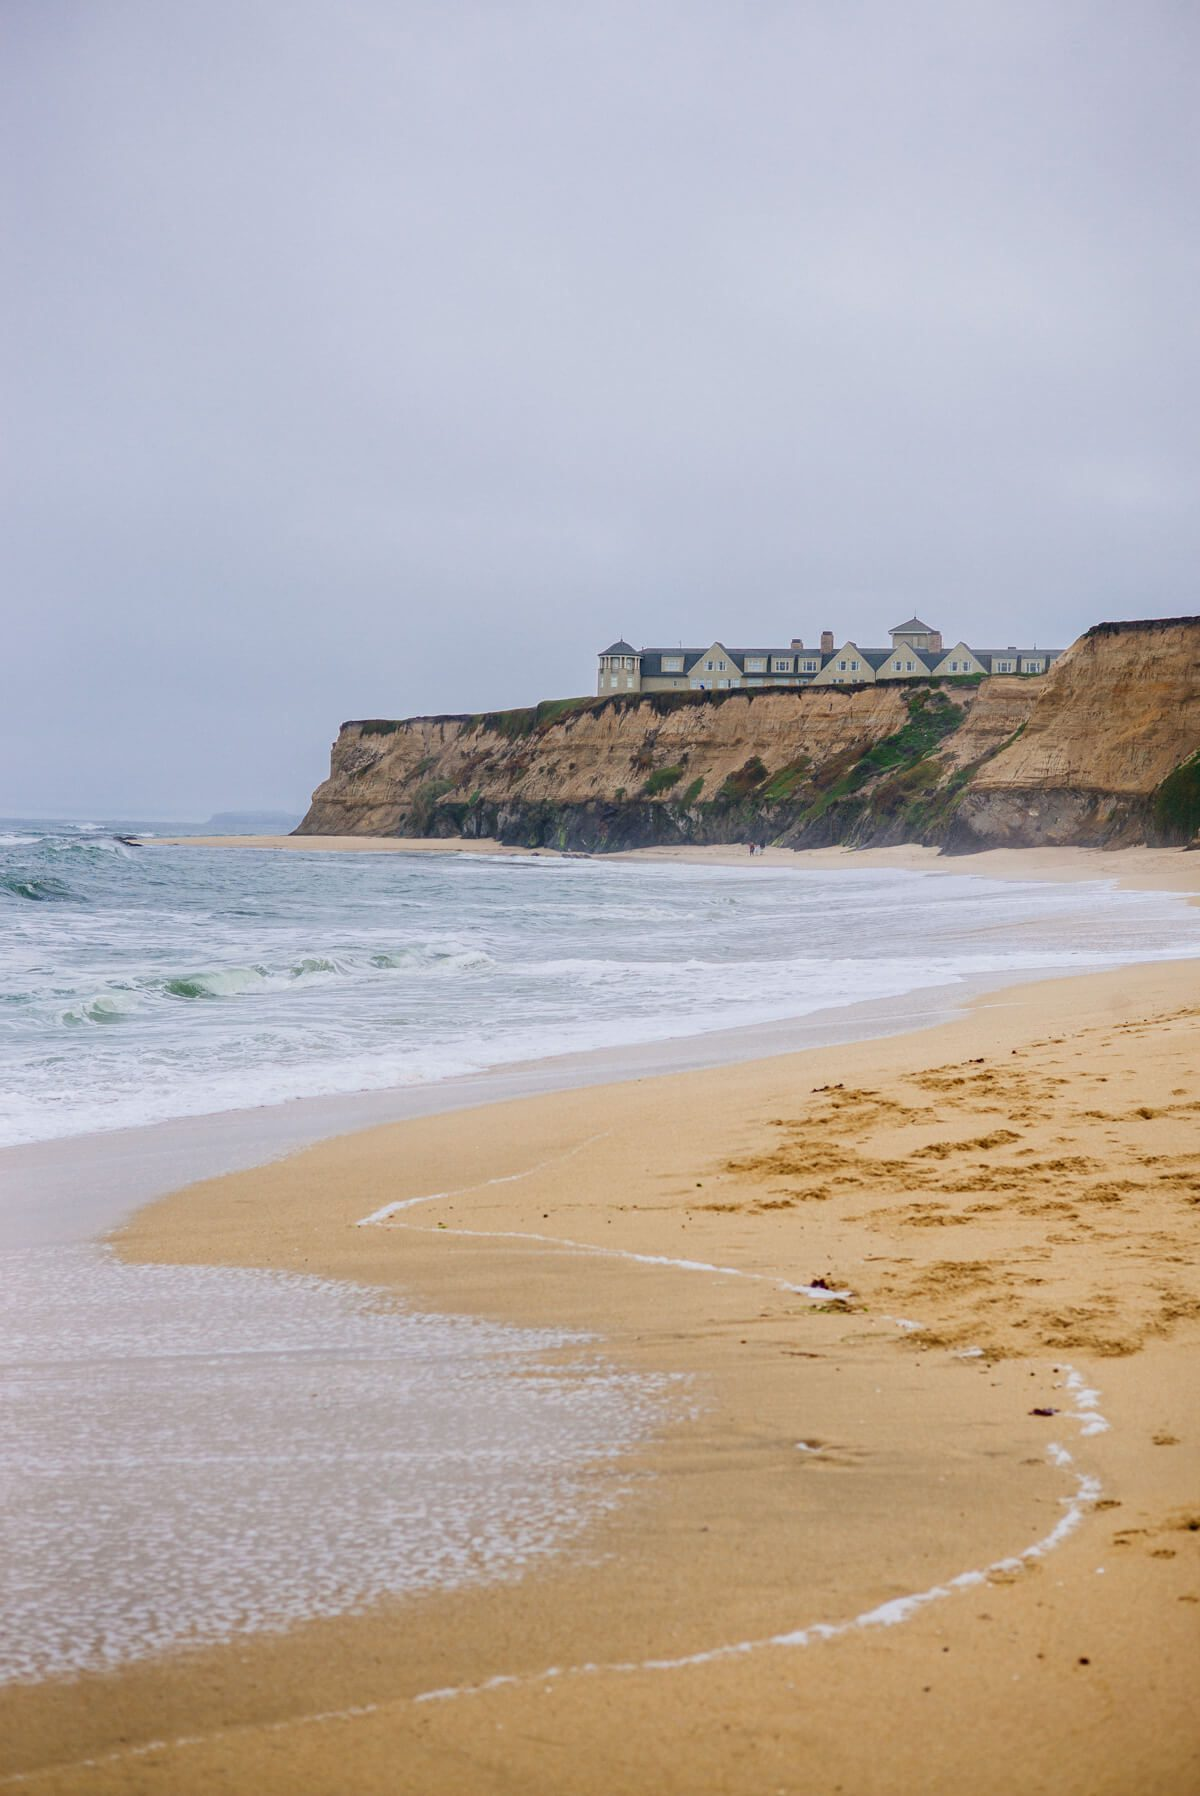 Looking back from the ocean at The Ritz-Carlton Half Moon Bay